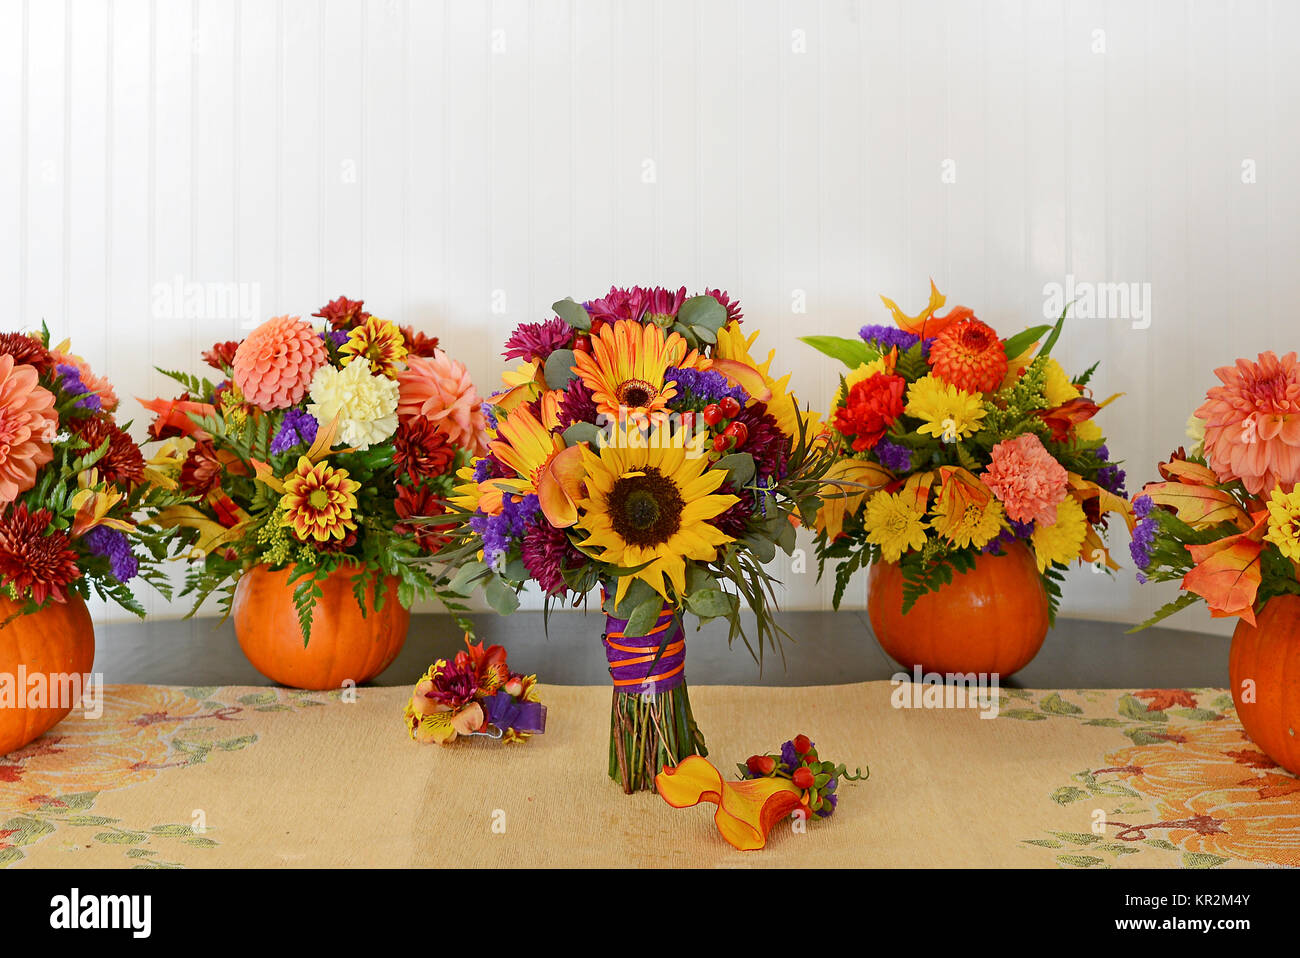 Photo of fall wedding flowers the sunflower bridal bouquet is stock photo of fall wedding flowers the sunflower bridal bouquet is surrounded by centerpieces of fresh flowers in real pumpkins colorful and fun izmirmasajfo